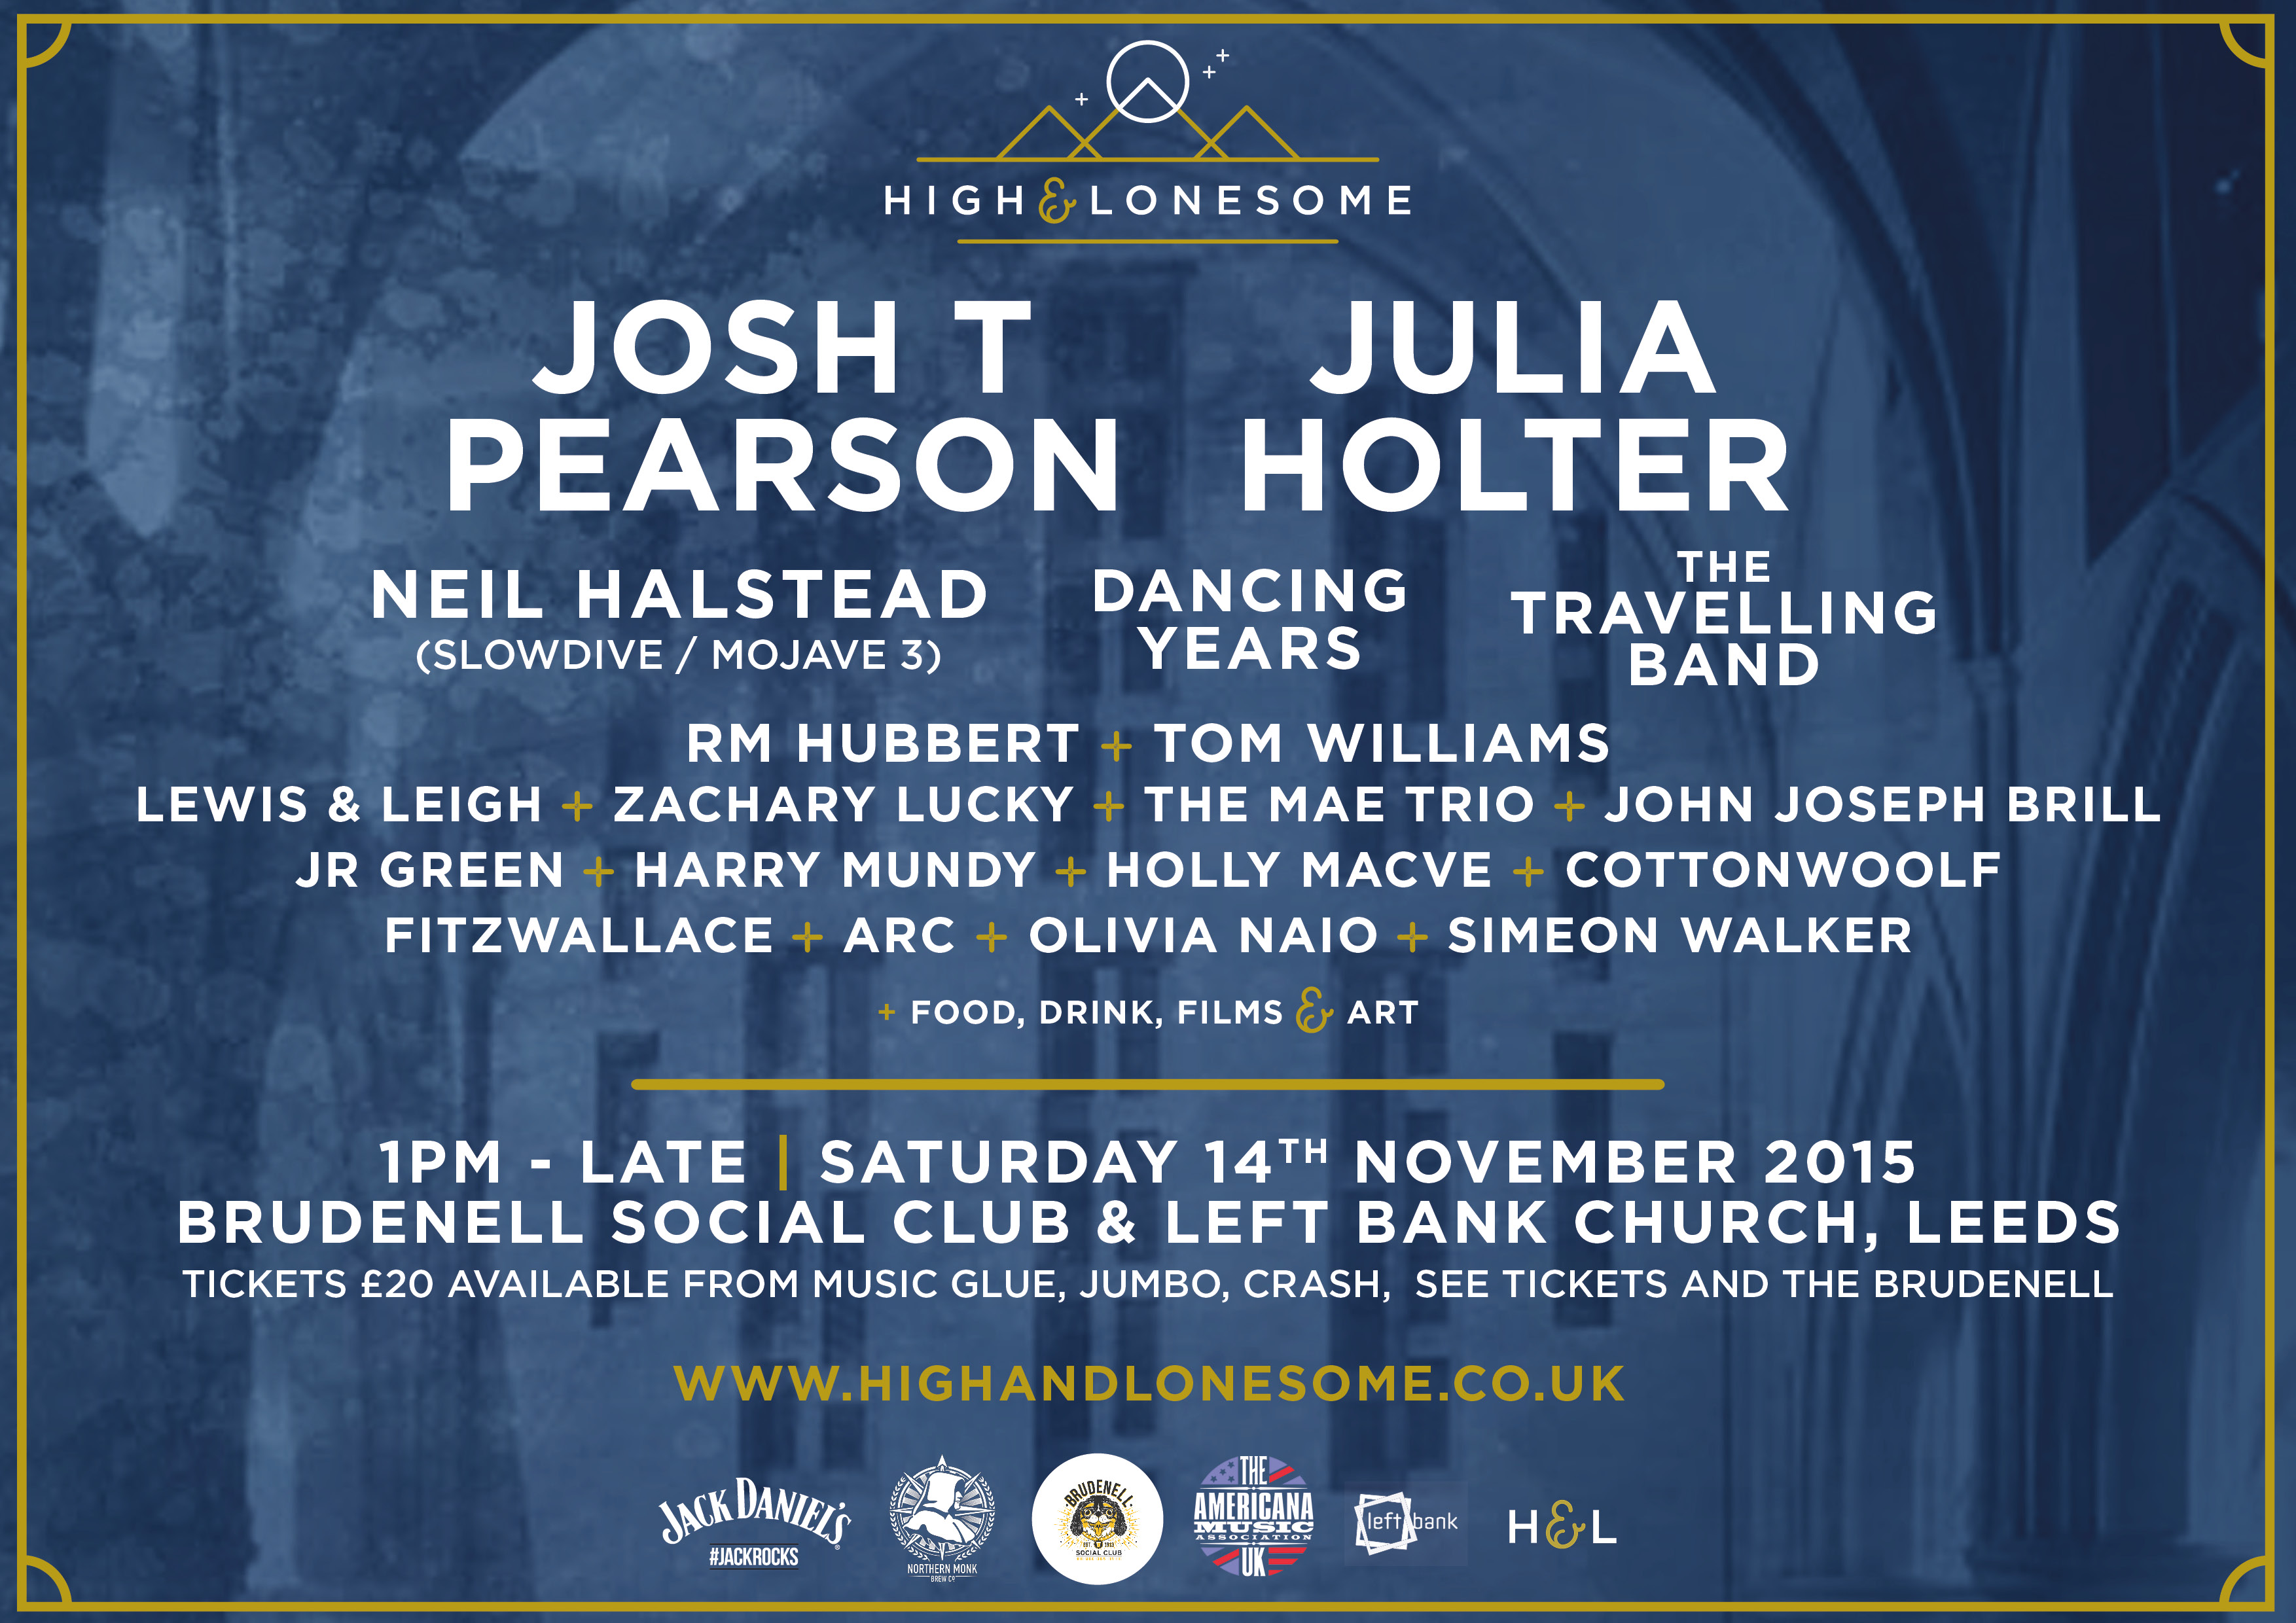 NEWS: High & Lonesome announces its full line-up